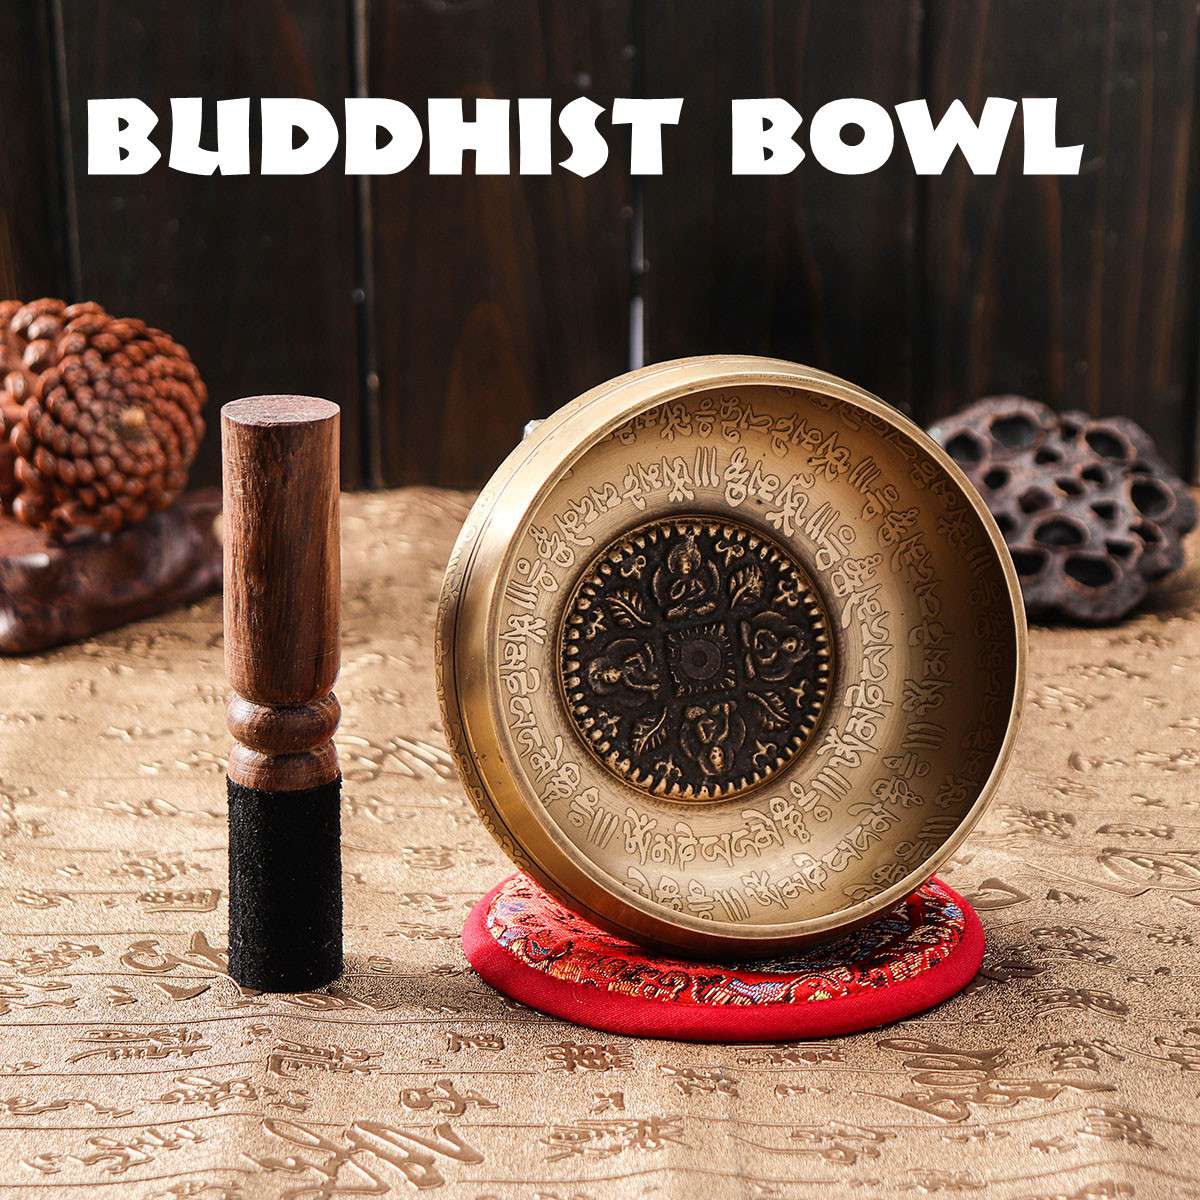 Tibetan Meditation Singing Bowl Nepalese Buddhist Chanting Bowl Buddhist Sound Therapy Bowl Mallet Mat Copper Handmade Carft